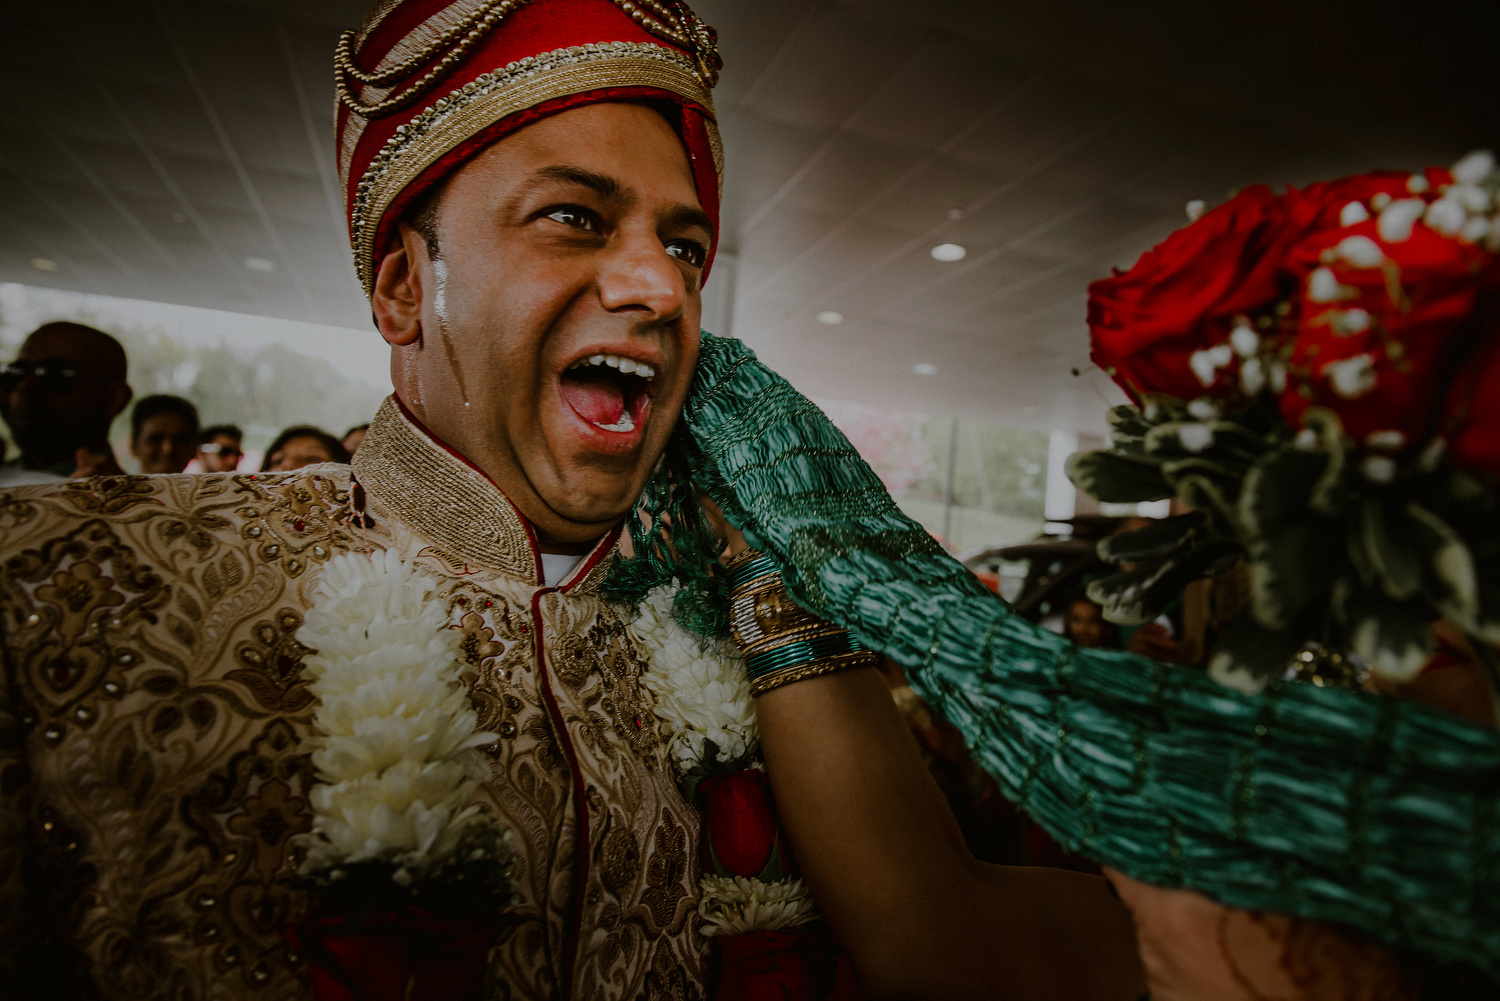 groom sweating as he enters indian wedding ceremony after baraat